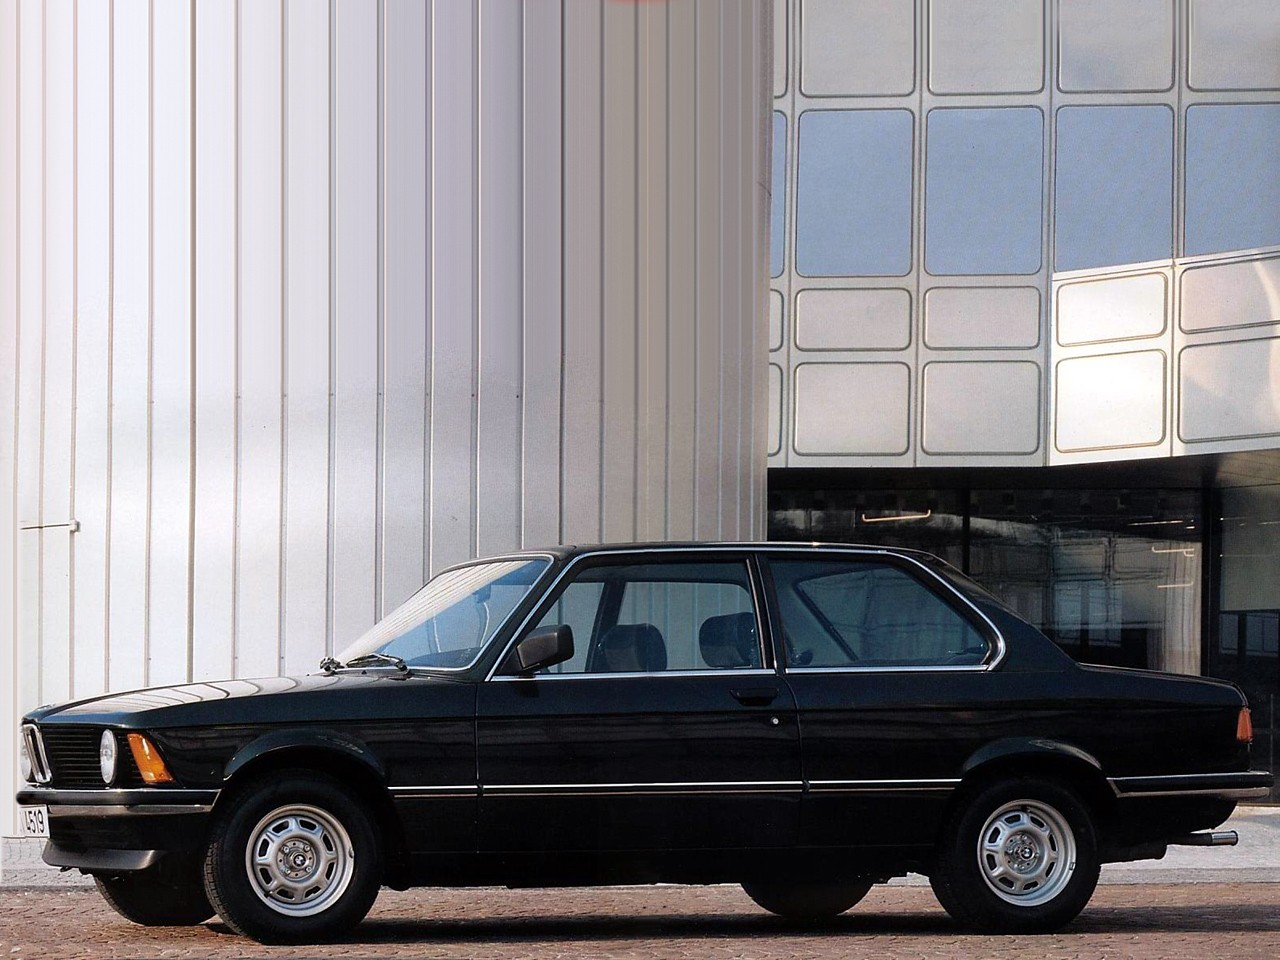 BMW 3 series 318 1983 photo - 2